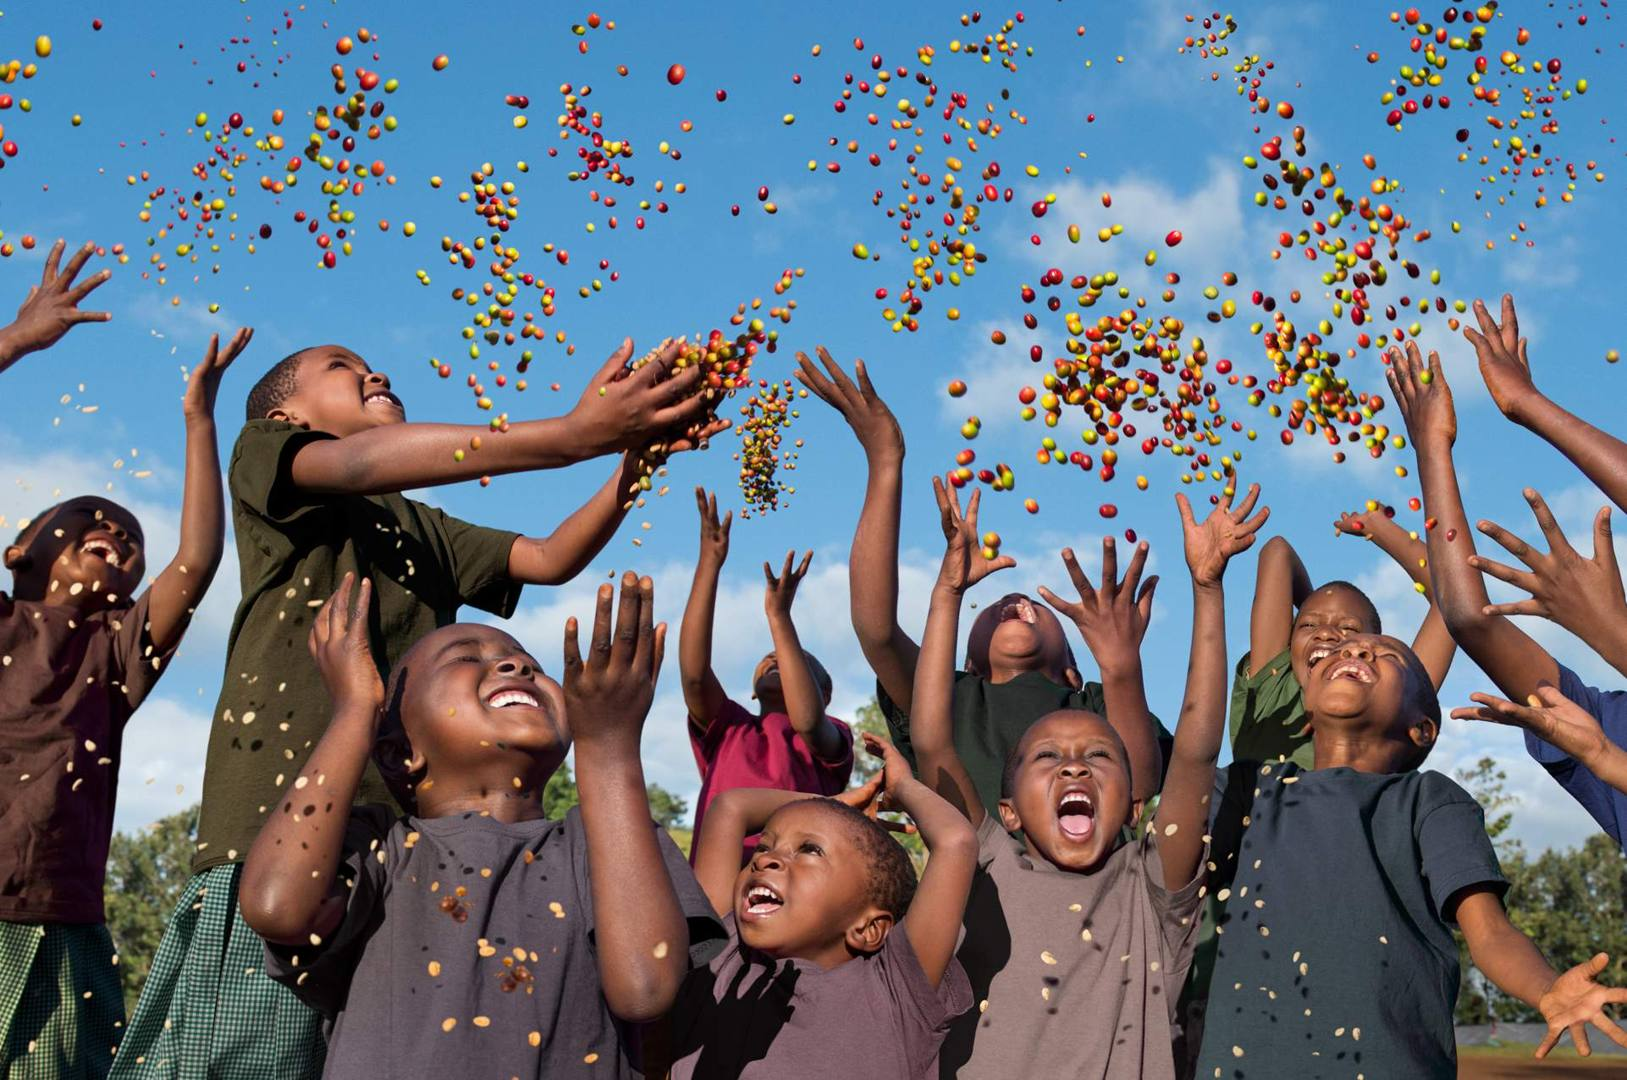 'Future in Our Hands' - children in Father Peter's School in Tanzania who symbolise the Earth Defenders of the future, throwing colourful coffee seeds into the air demonstrates that the future really does lie in our own hands